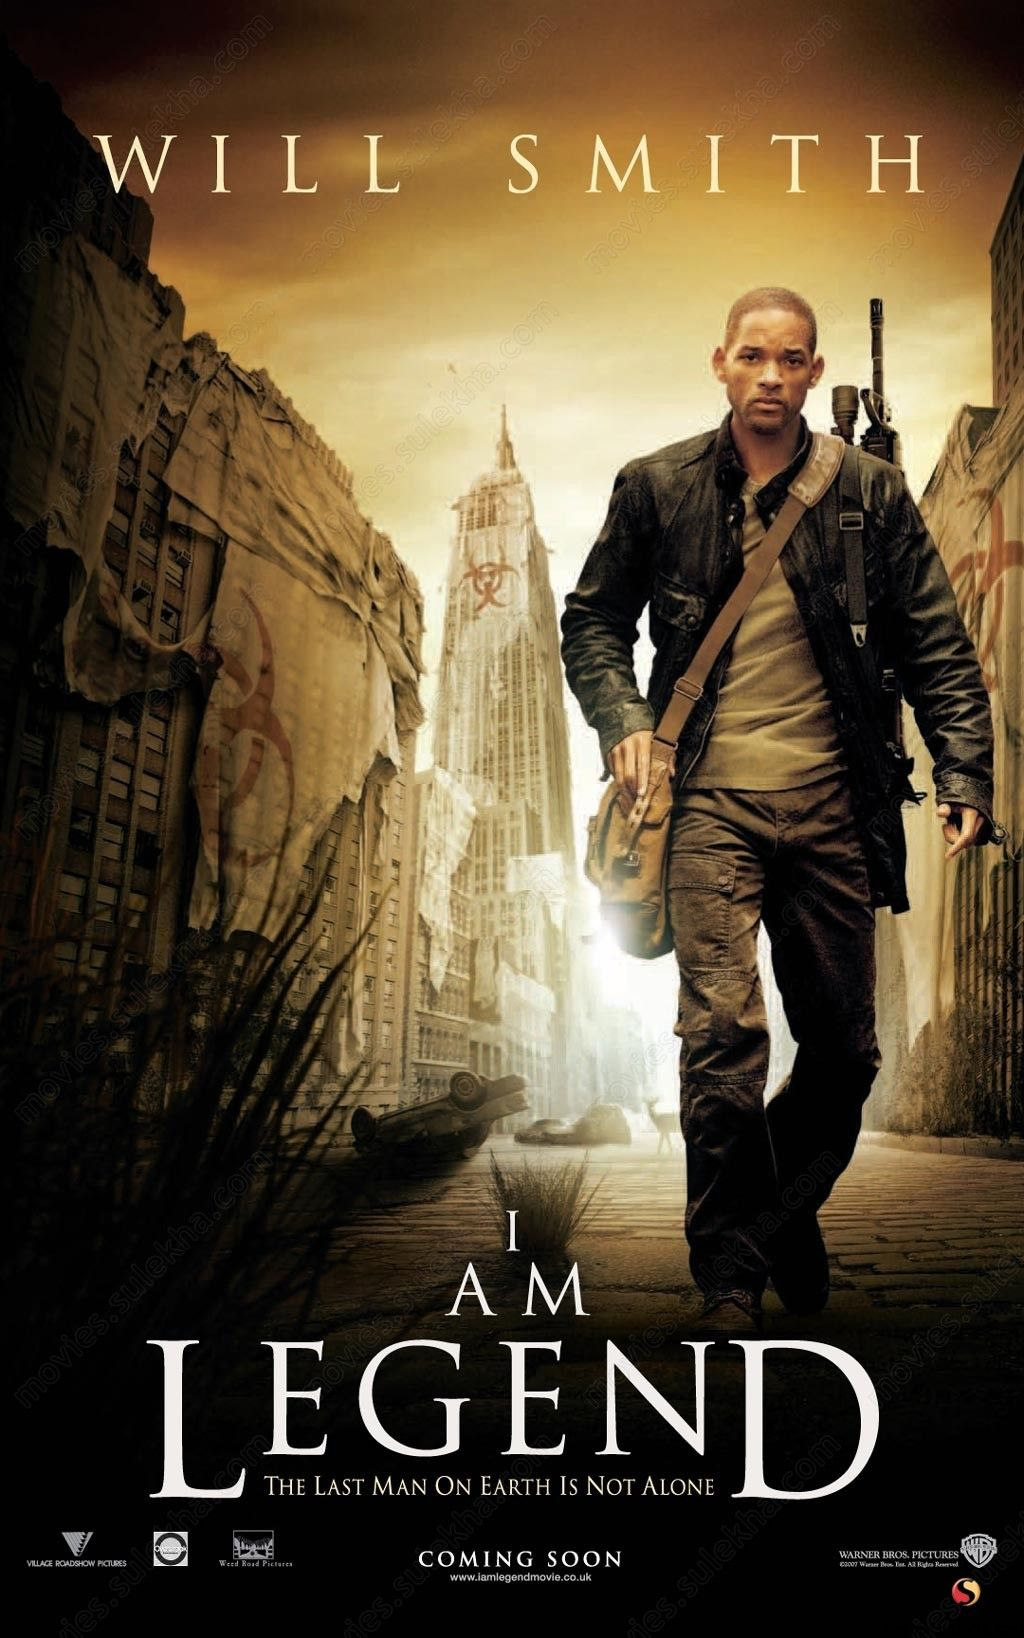 Am Legend english Movie Wallpaper I Am Legend Poster 1024x768 1024x1638